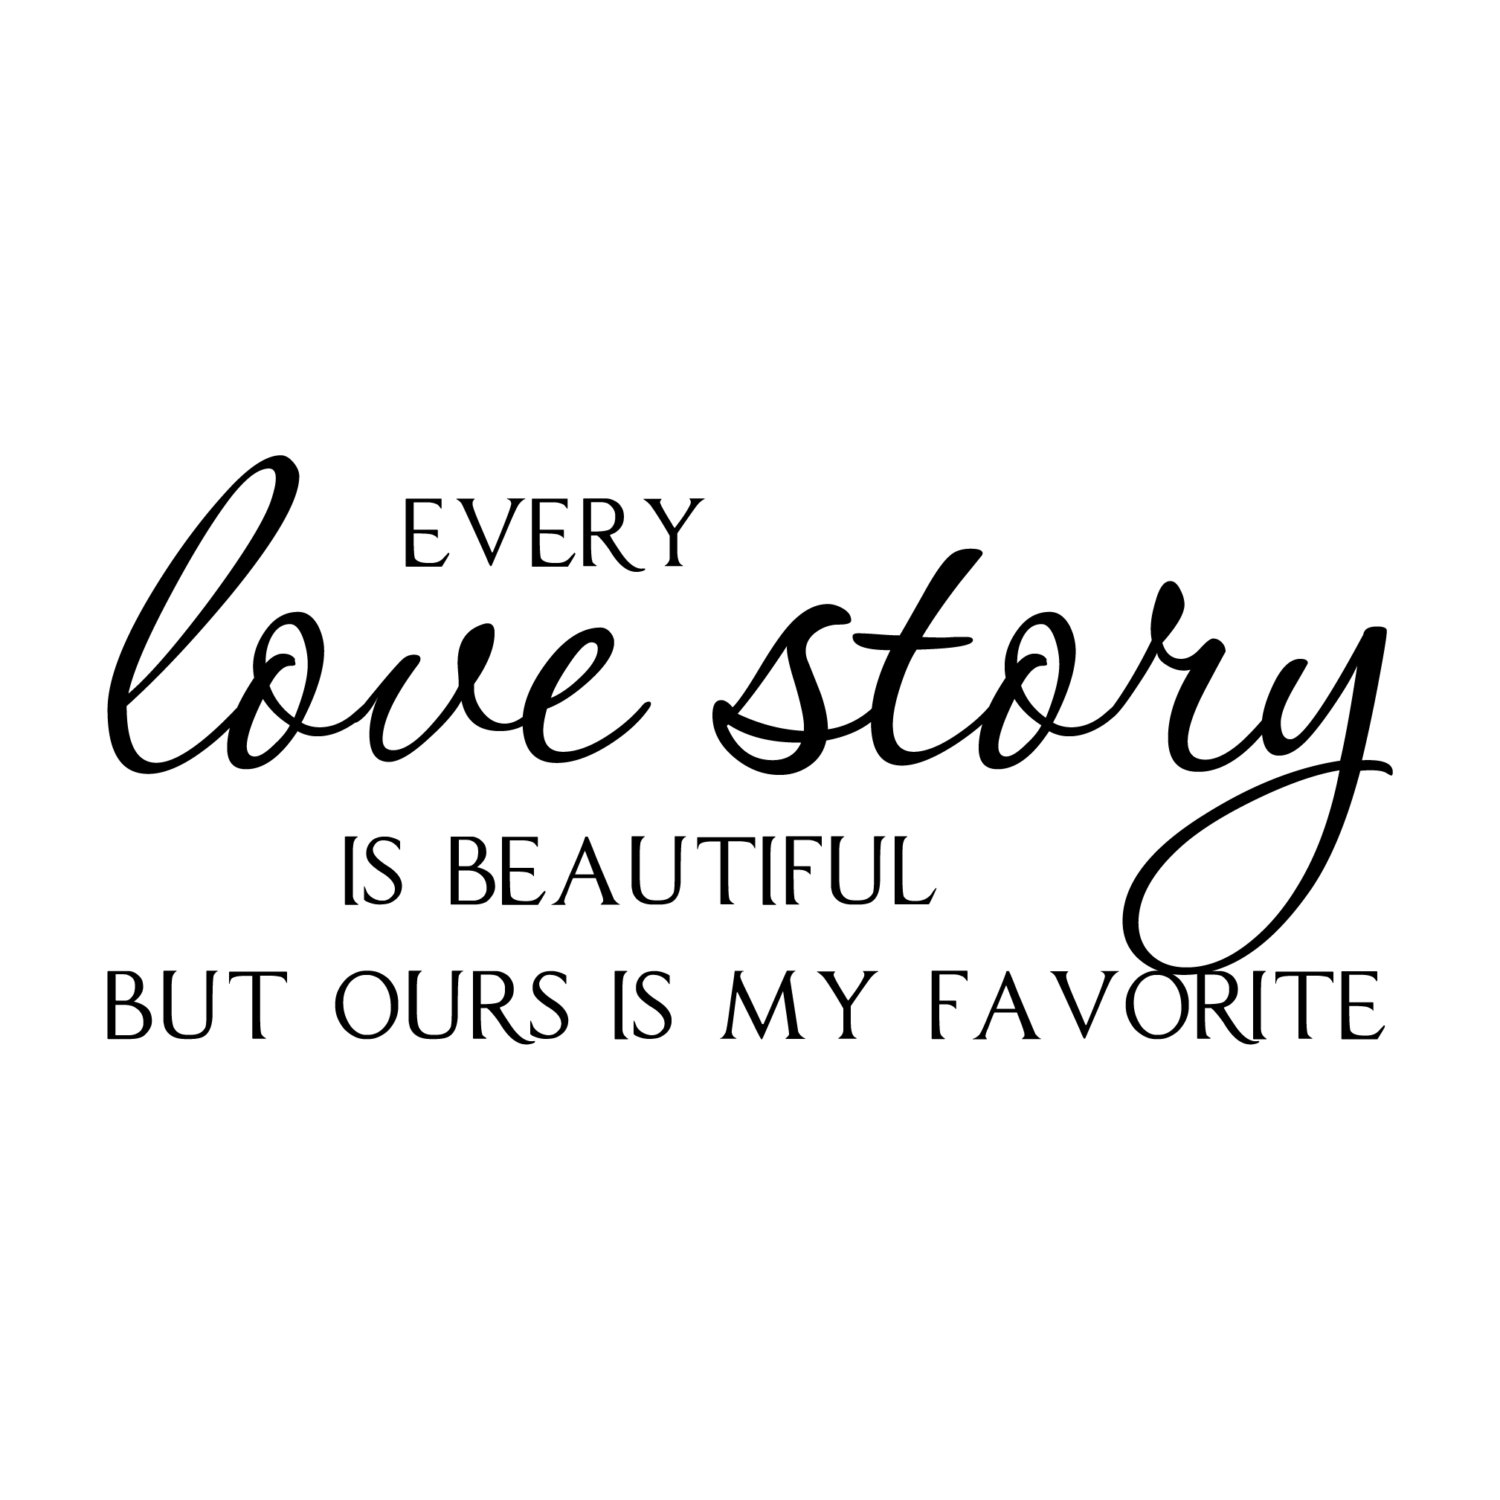 Quotes About Love: Black Love And Marriage Quotes. QuotesGram